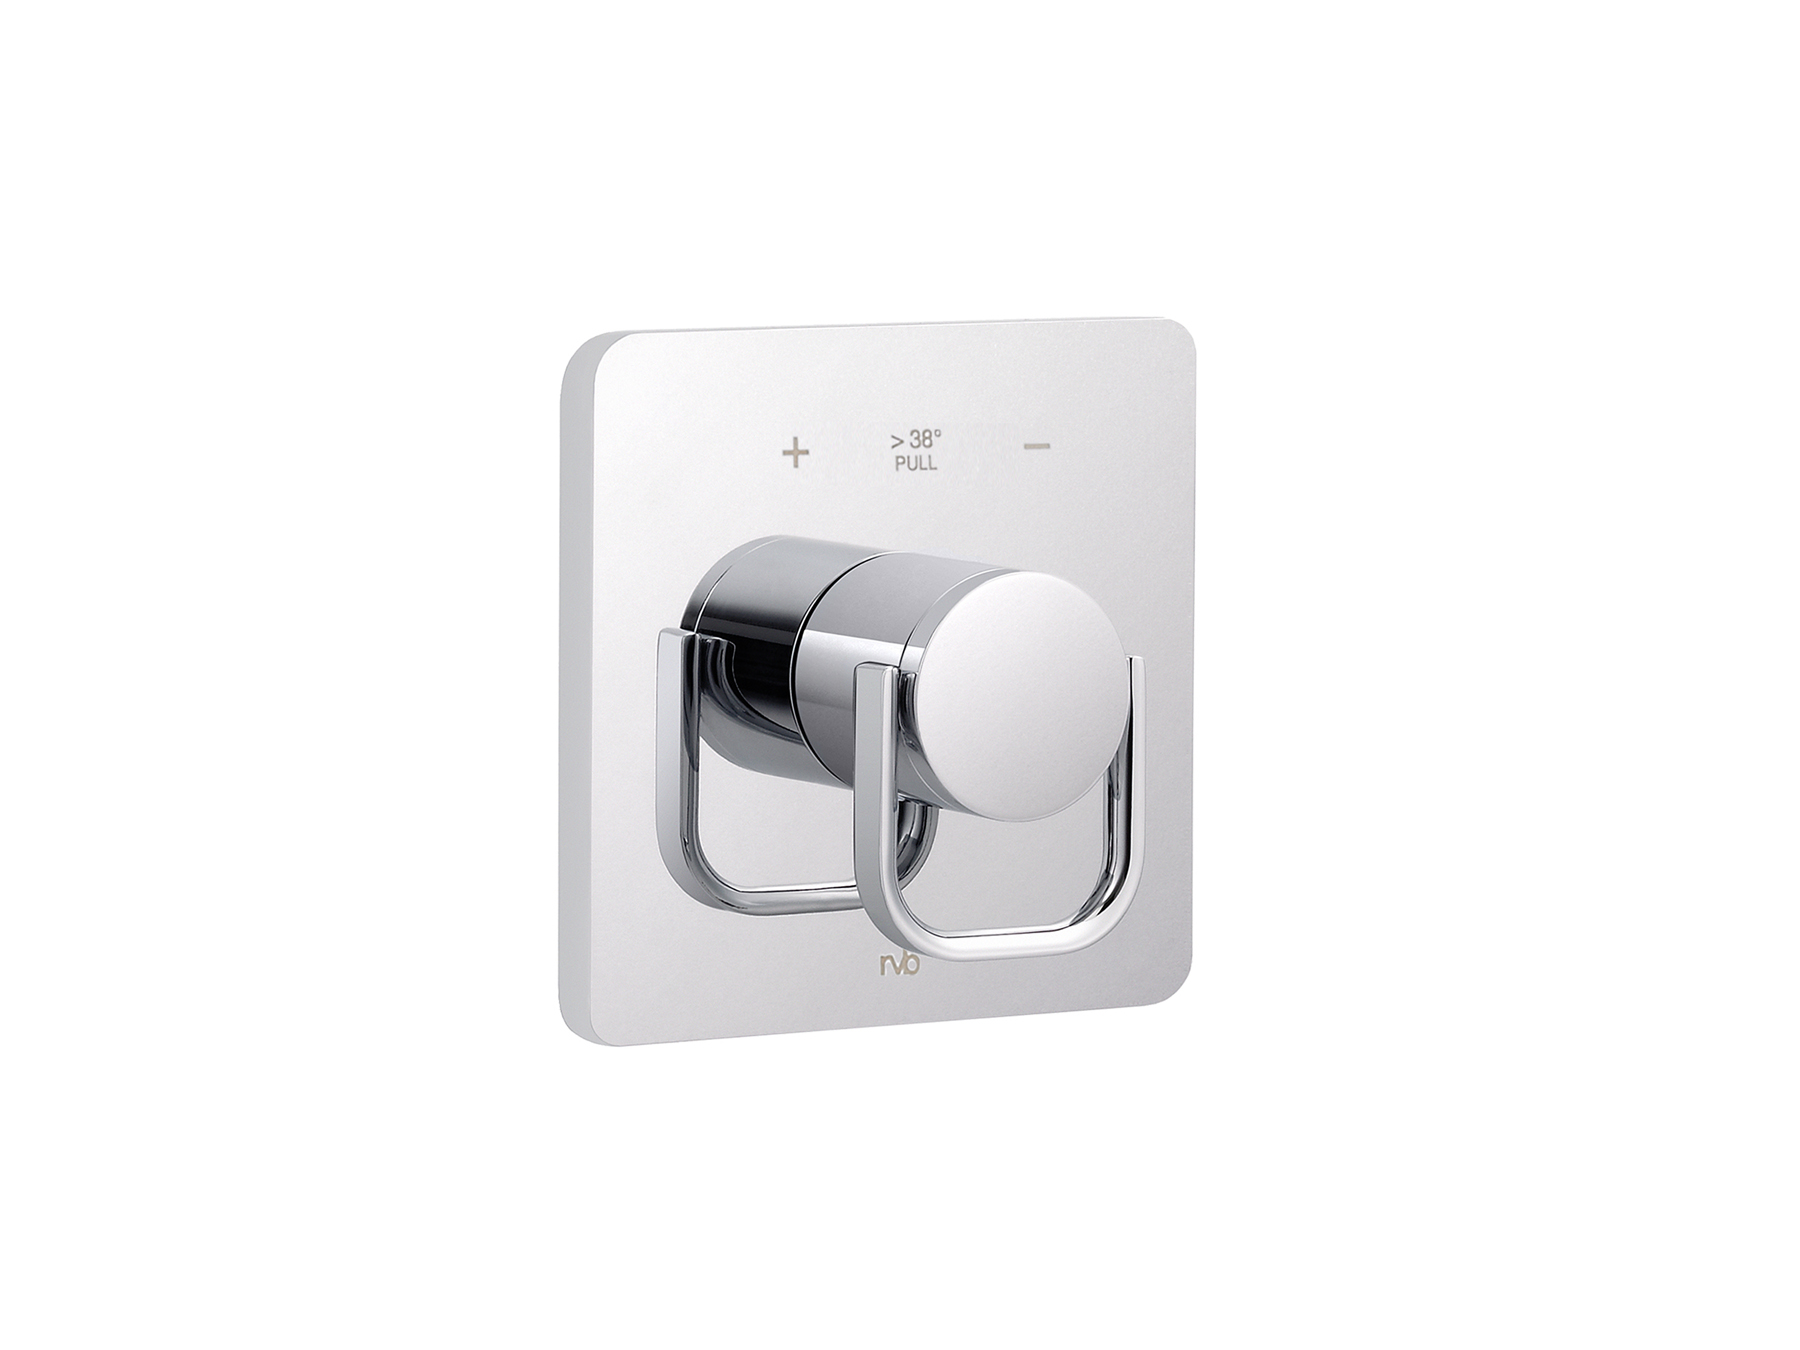 Concealed shower thermostat 4041.--.74